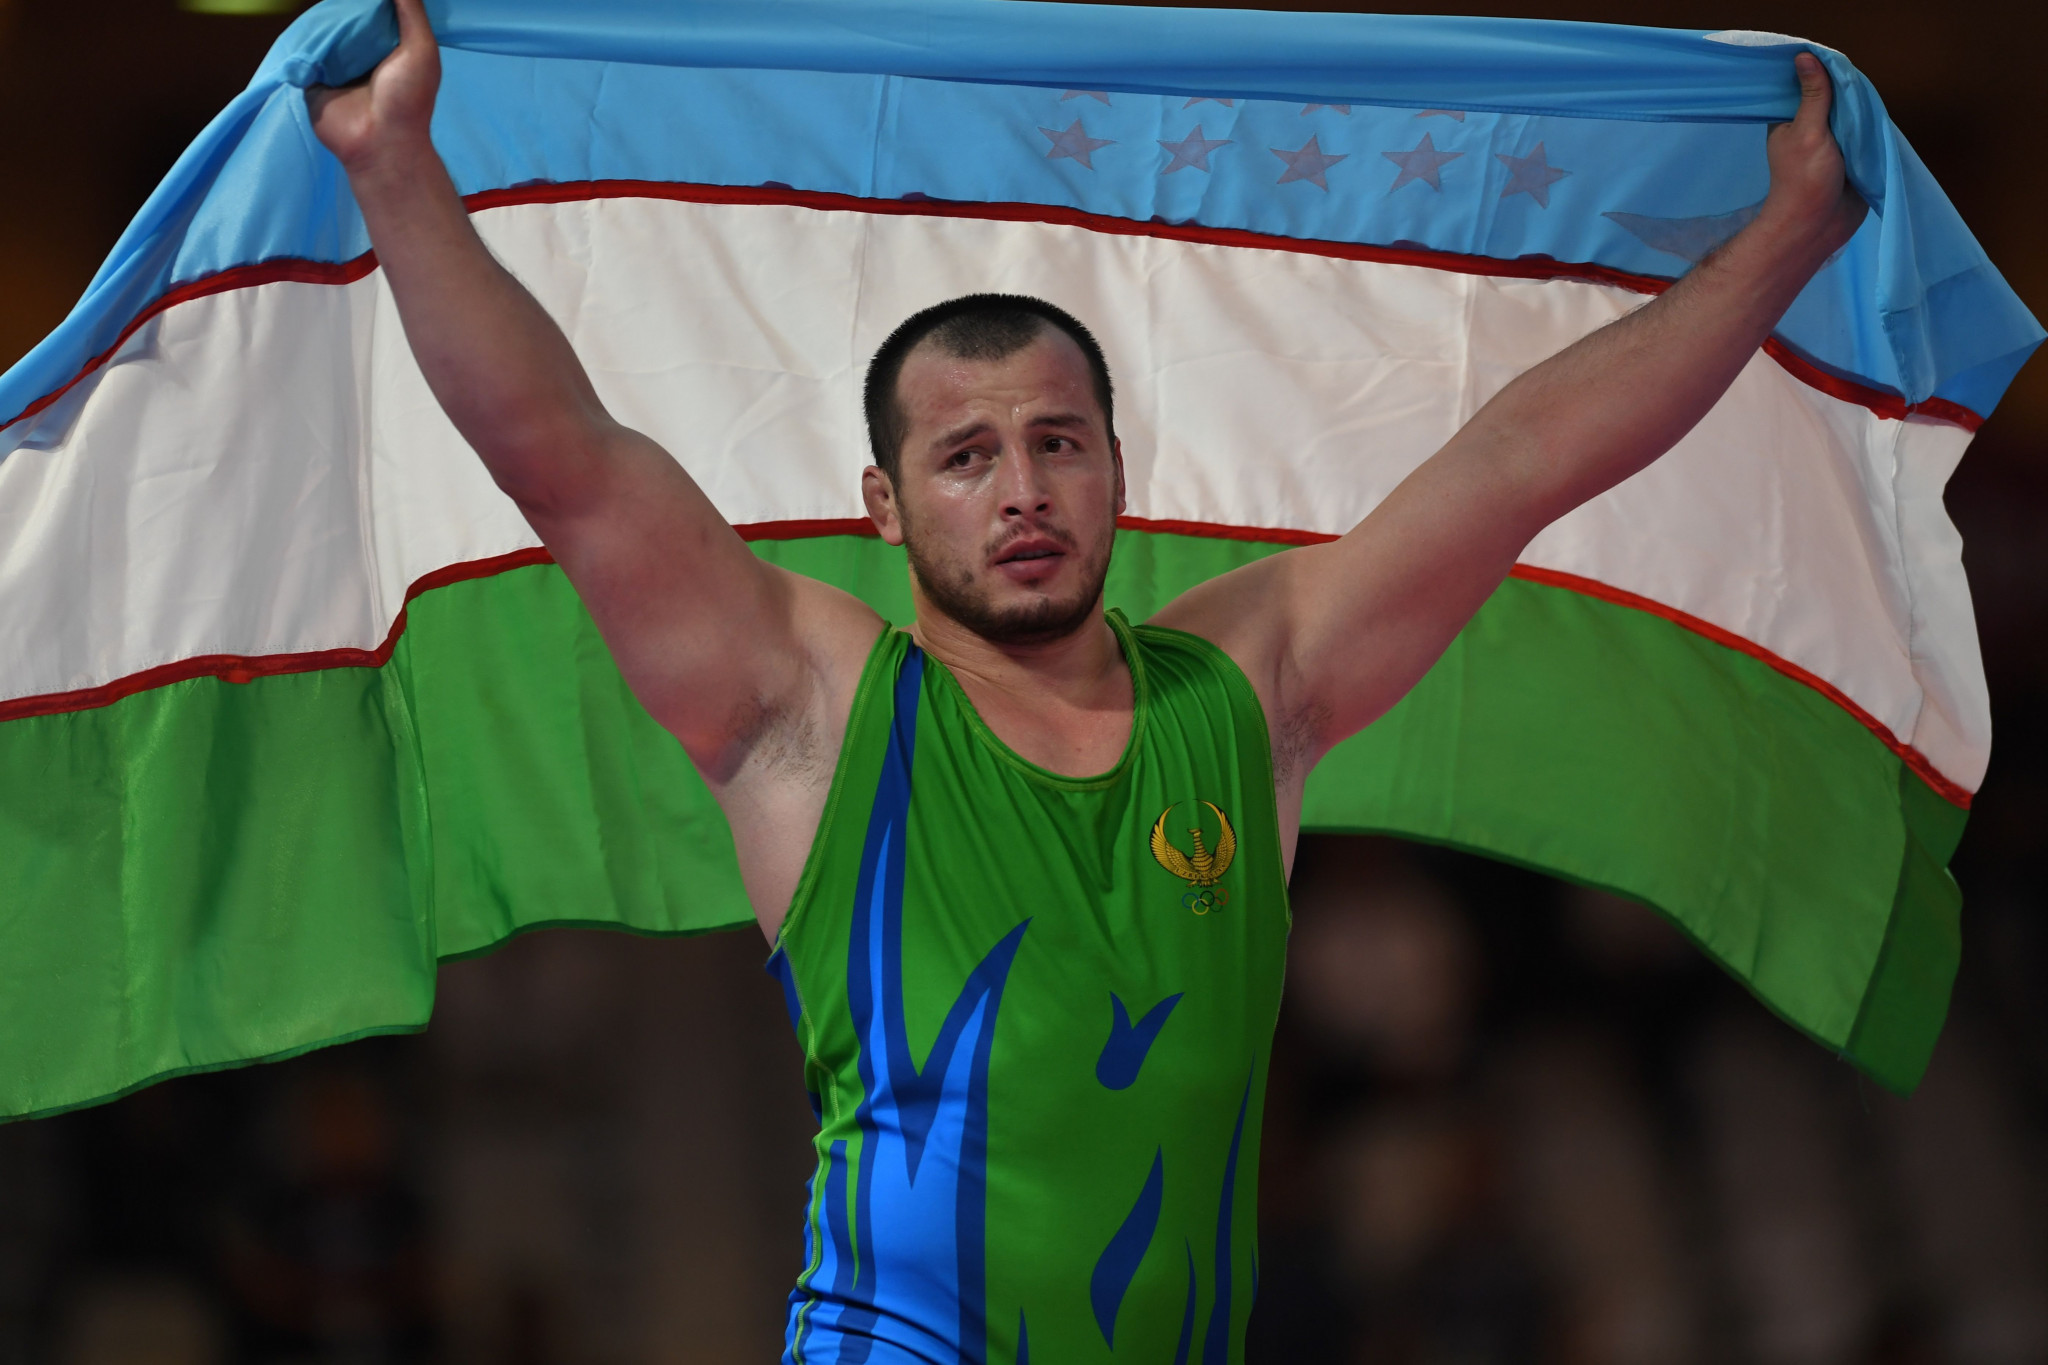 Uzbekistan won 70 medals, including 21 gold, at last year's Asian Games in Jakarta-Palembang ©Getty Images